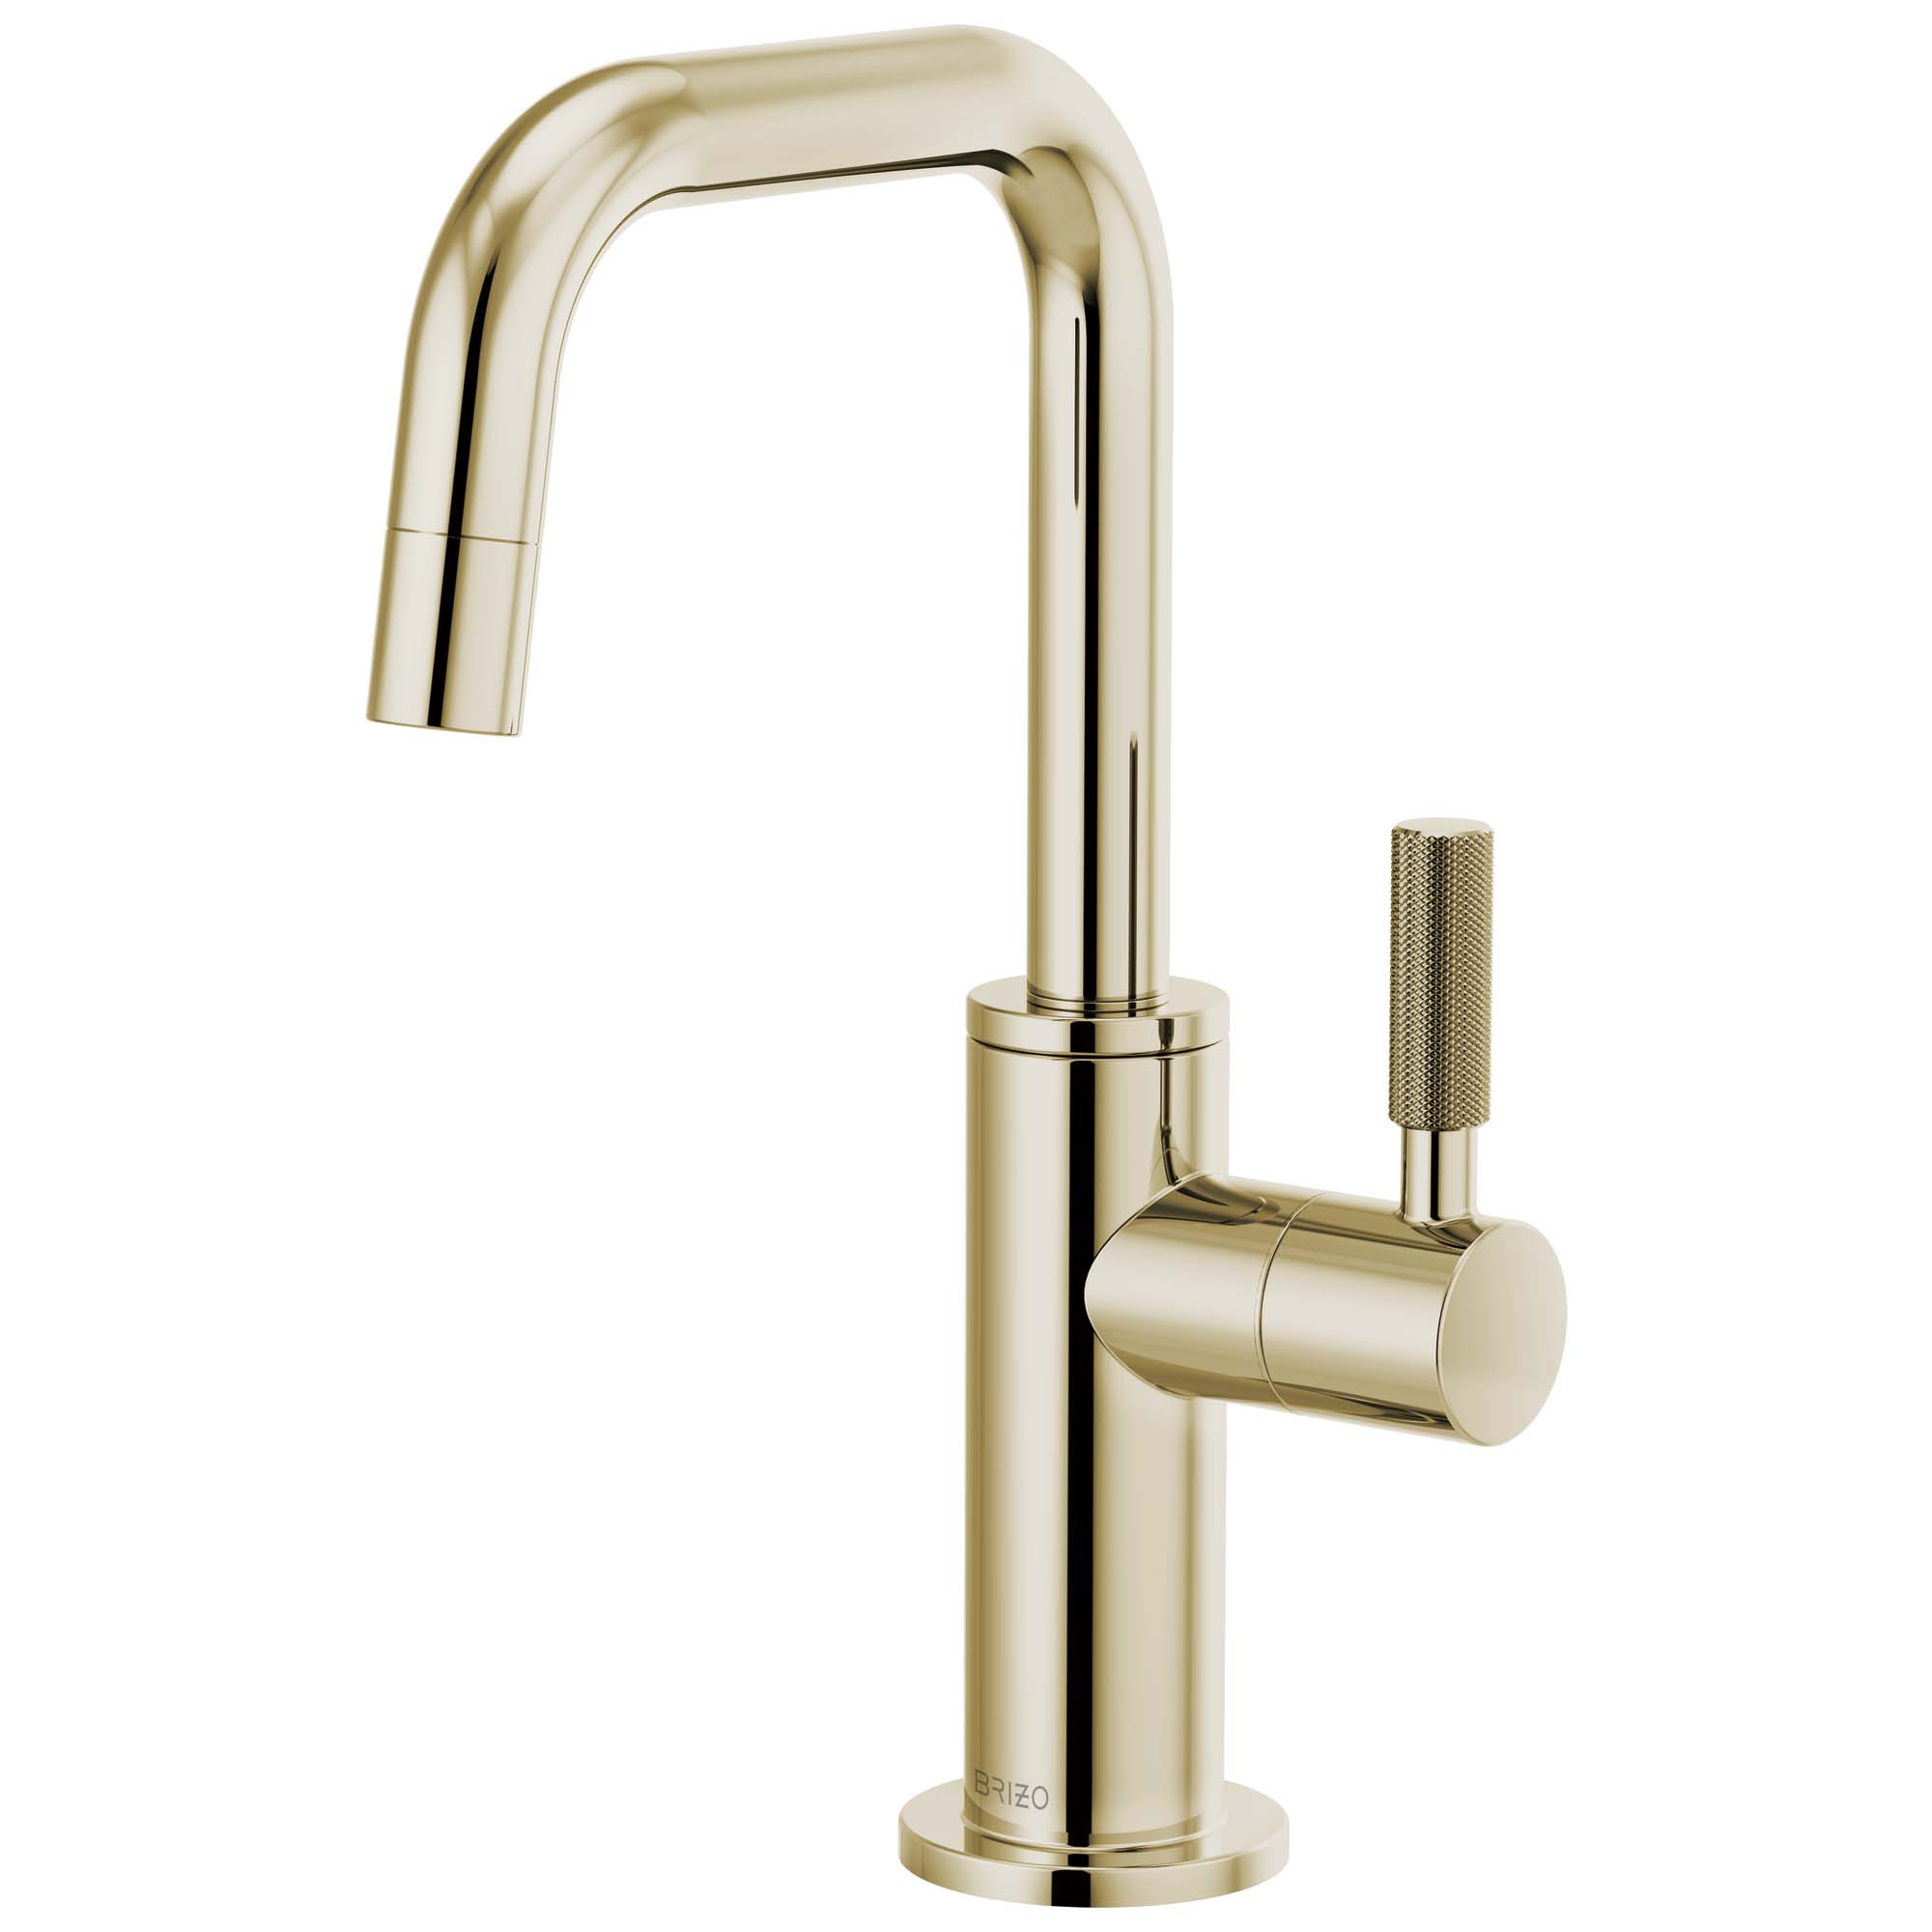 Brizo 61353LF-C-PN Litze Beverage Faucet with Square Spout and Knurled Handle - Polished Nickel